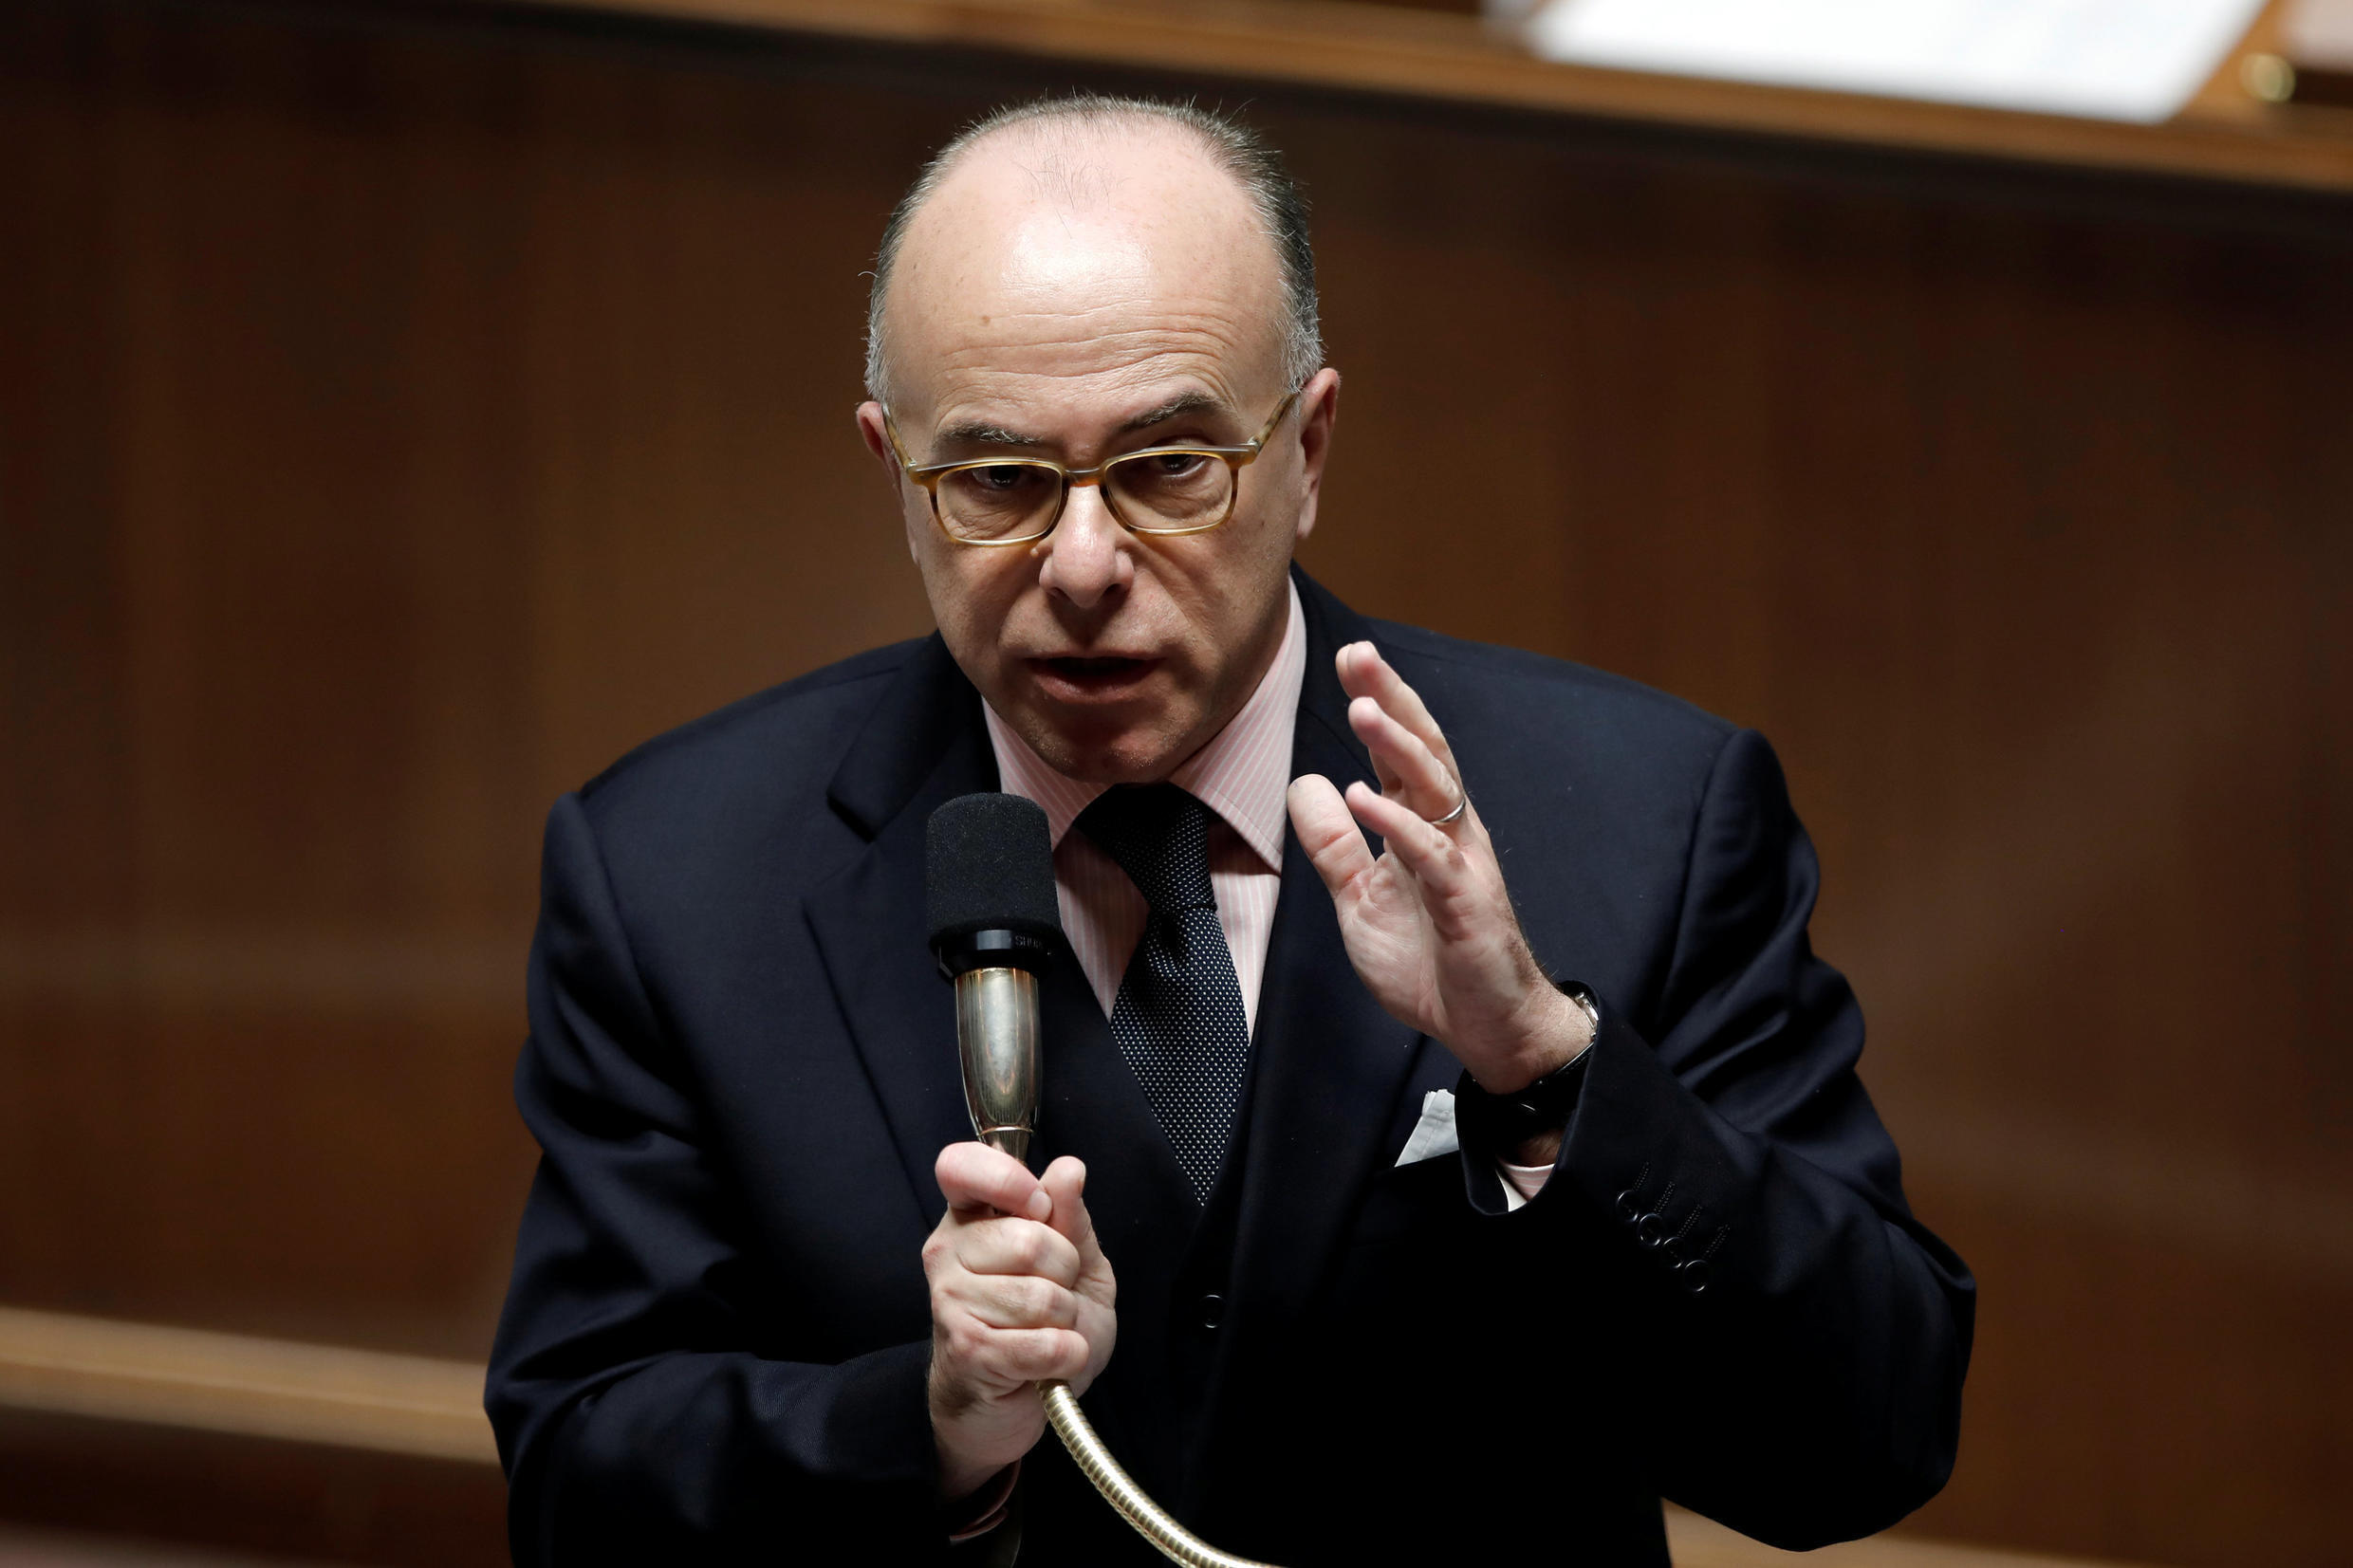 French Prime Minister Bernard Cazeneuve the state of emergency had demonstrated its efficiency.